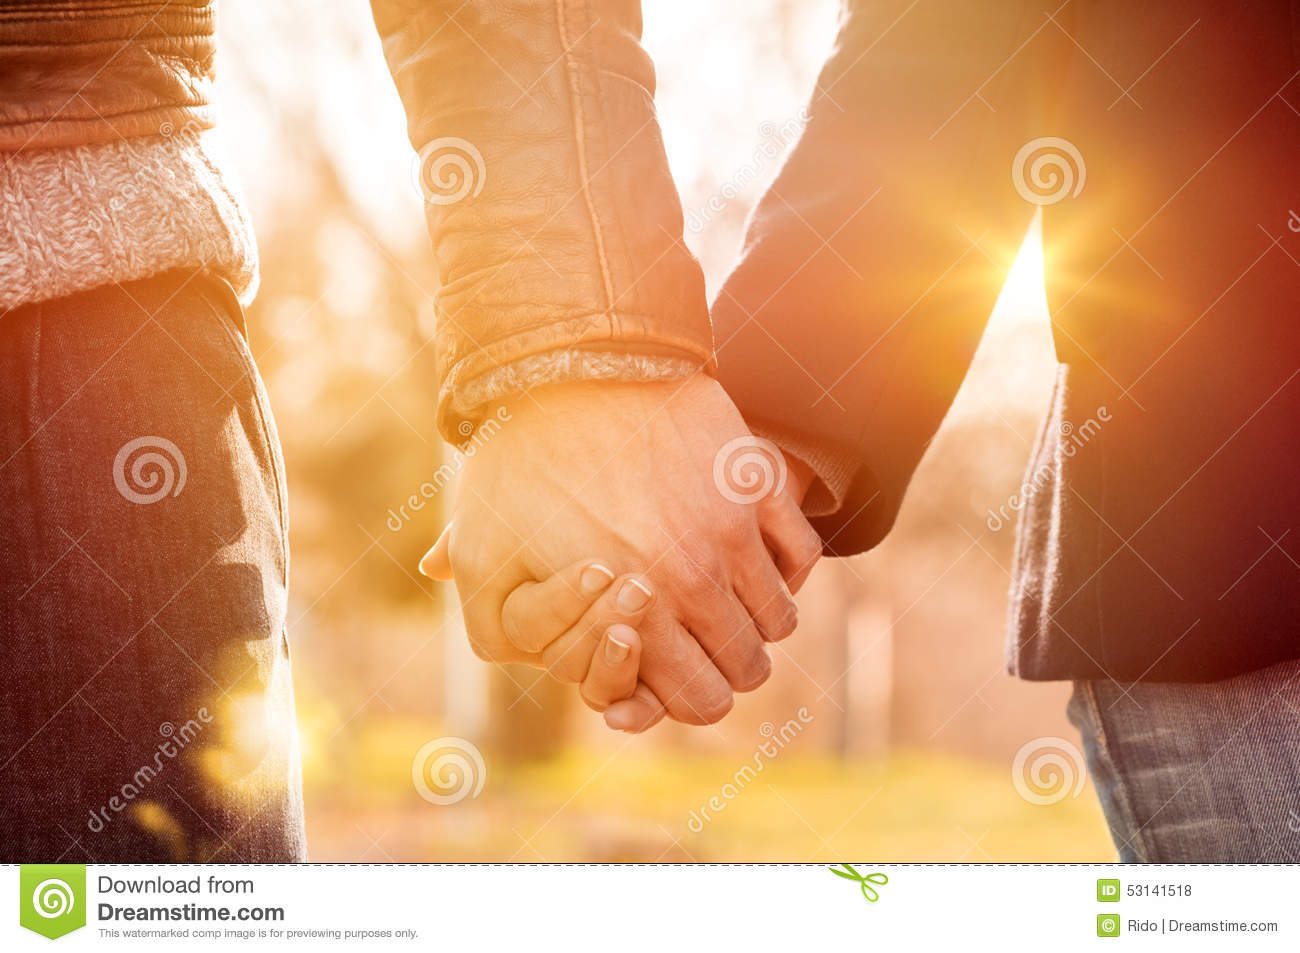 Holding hands in dating what is a mentor 2